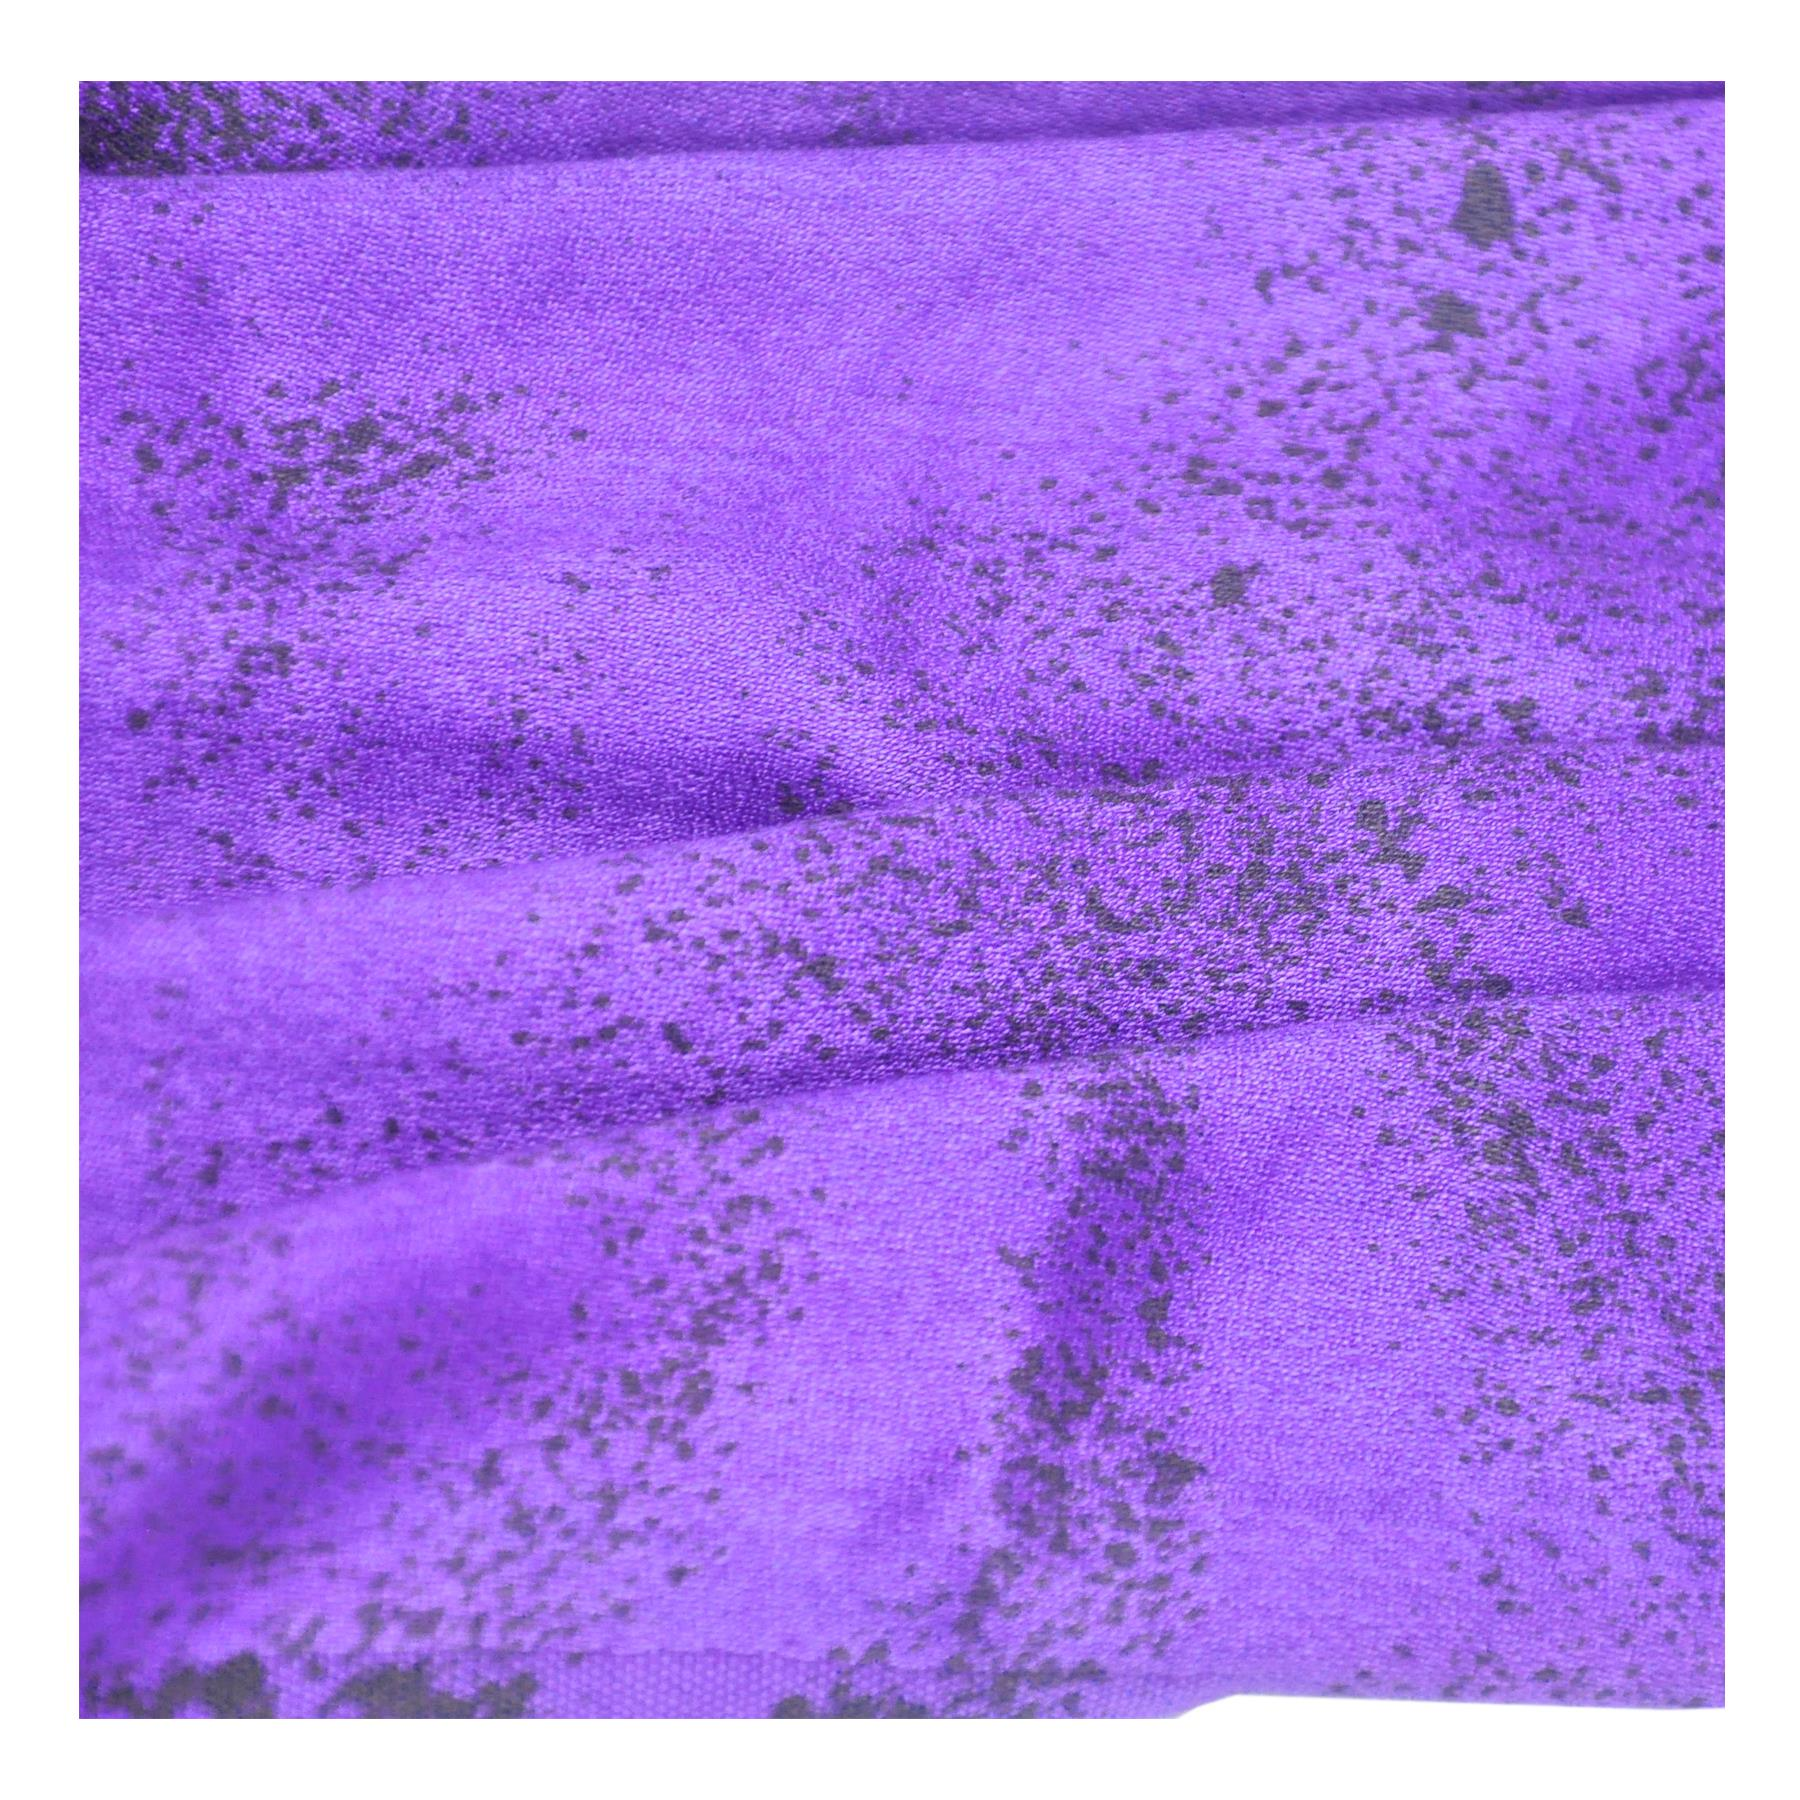 New-Women-s-Ink-Splatter-Thick-Comfortable-Winter-Warm-Scarf-Shawl-Wrap thumbnail 9